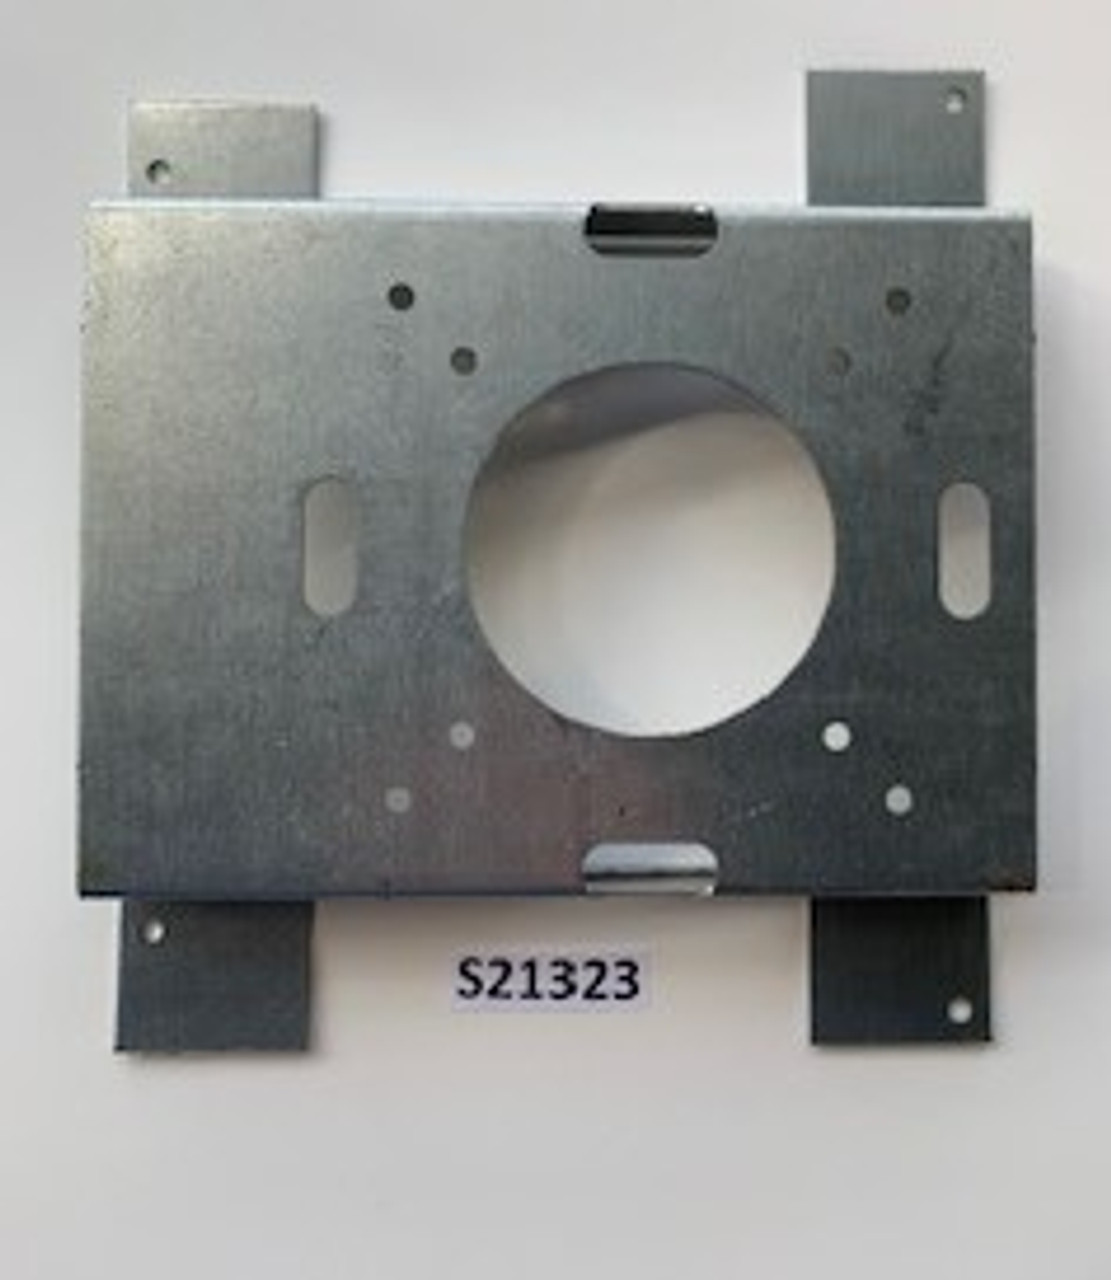 Bracket, Combustion Motor Mounting, Aaon, S21323